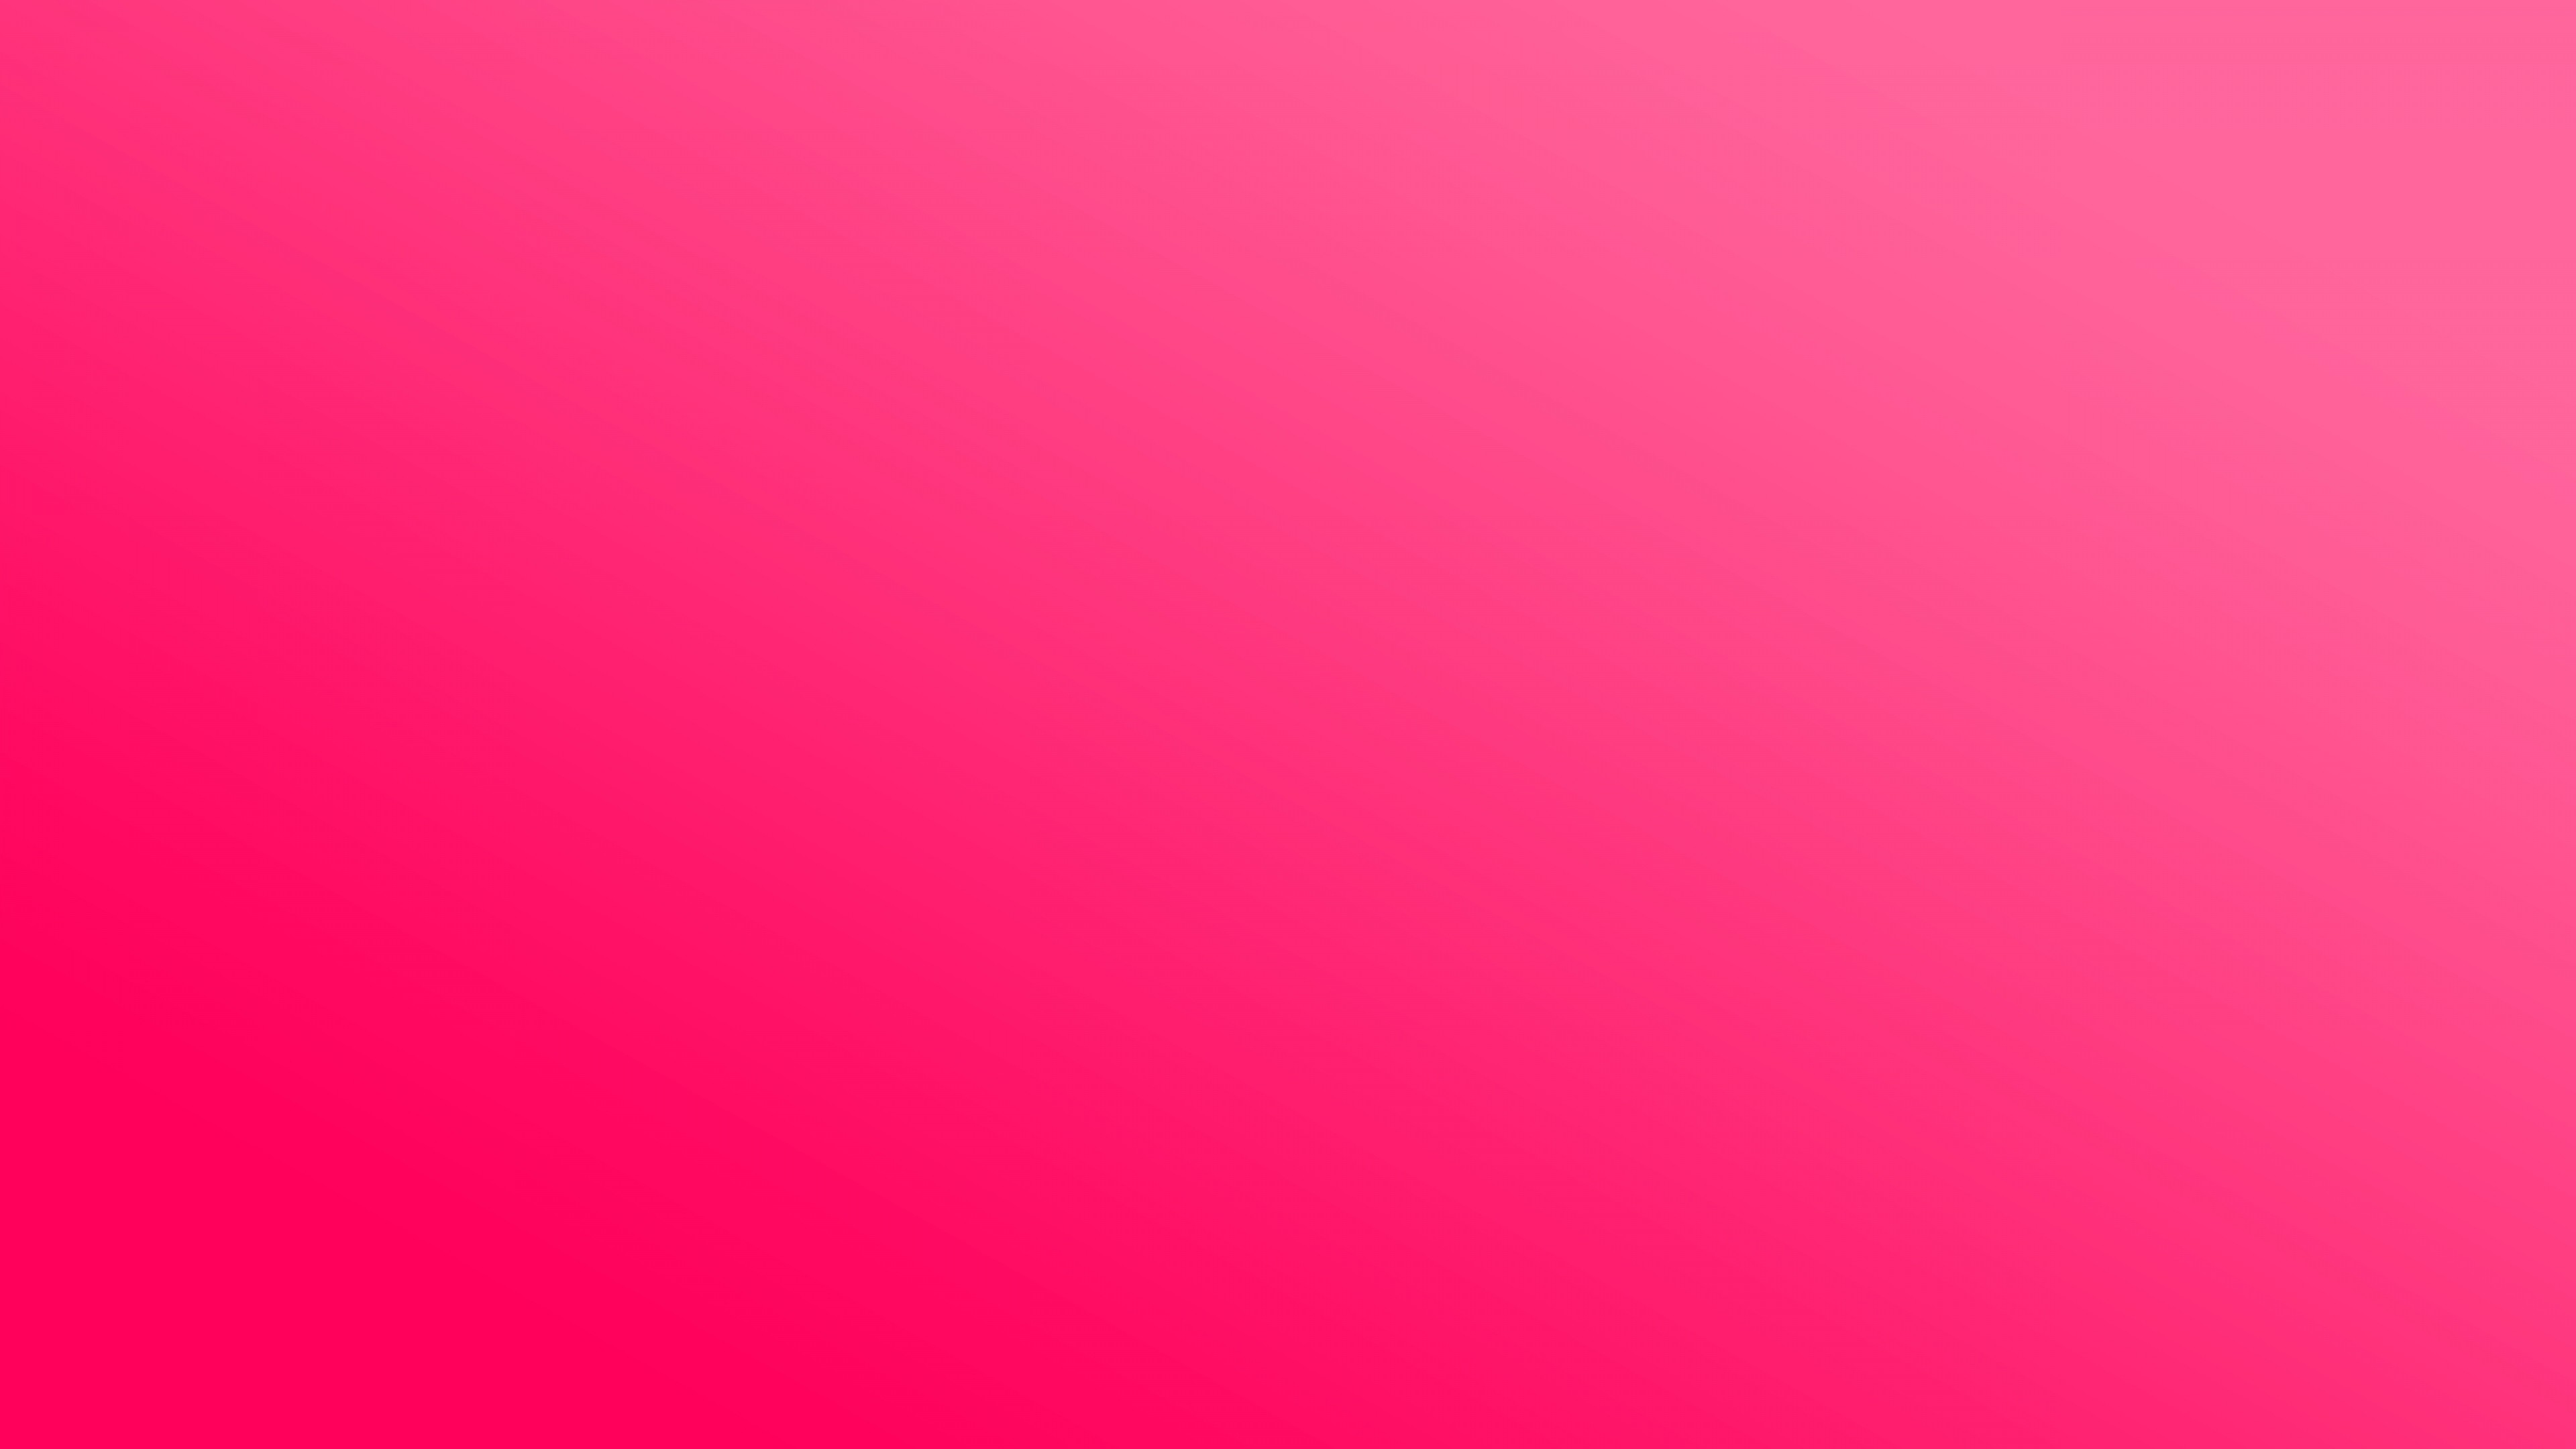 Preview wallpaper pink, solid, color, light, bright 3840×2160